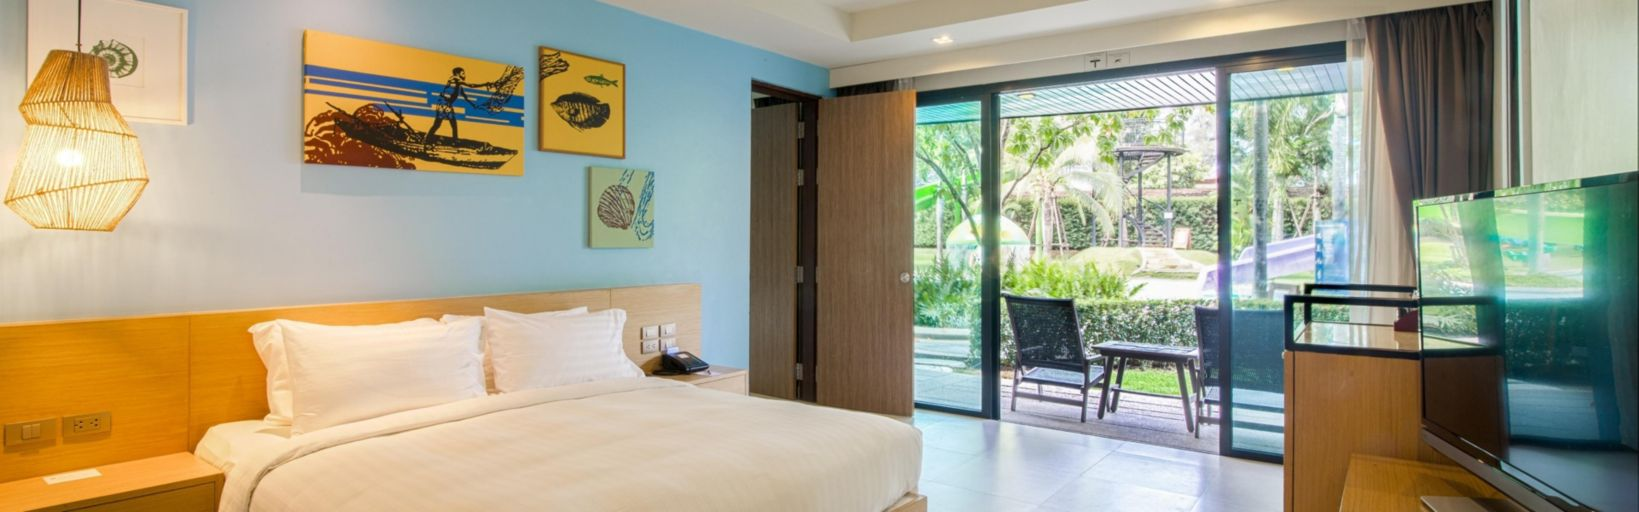 holiday-inn-resort-krabi-5082487789-16×5